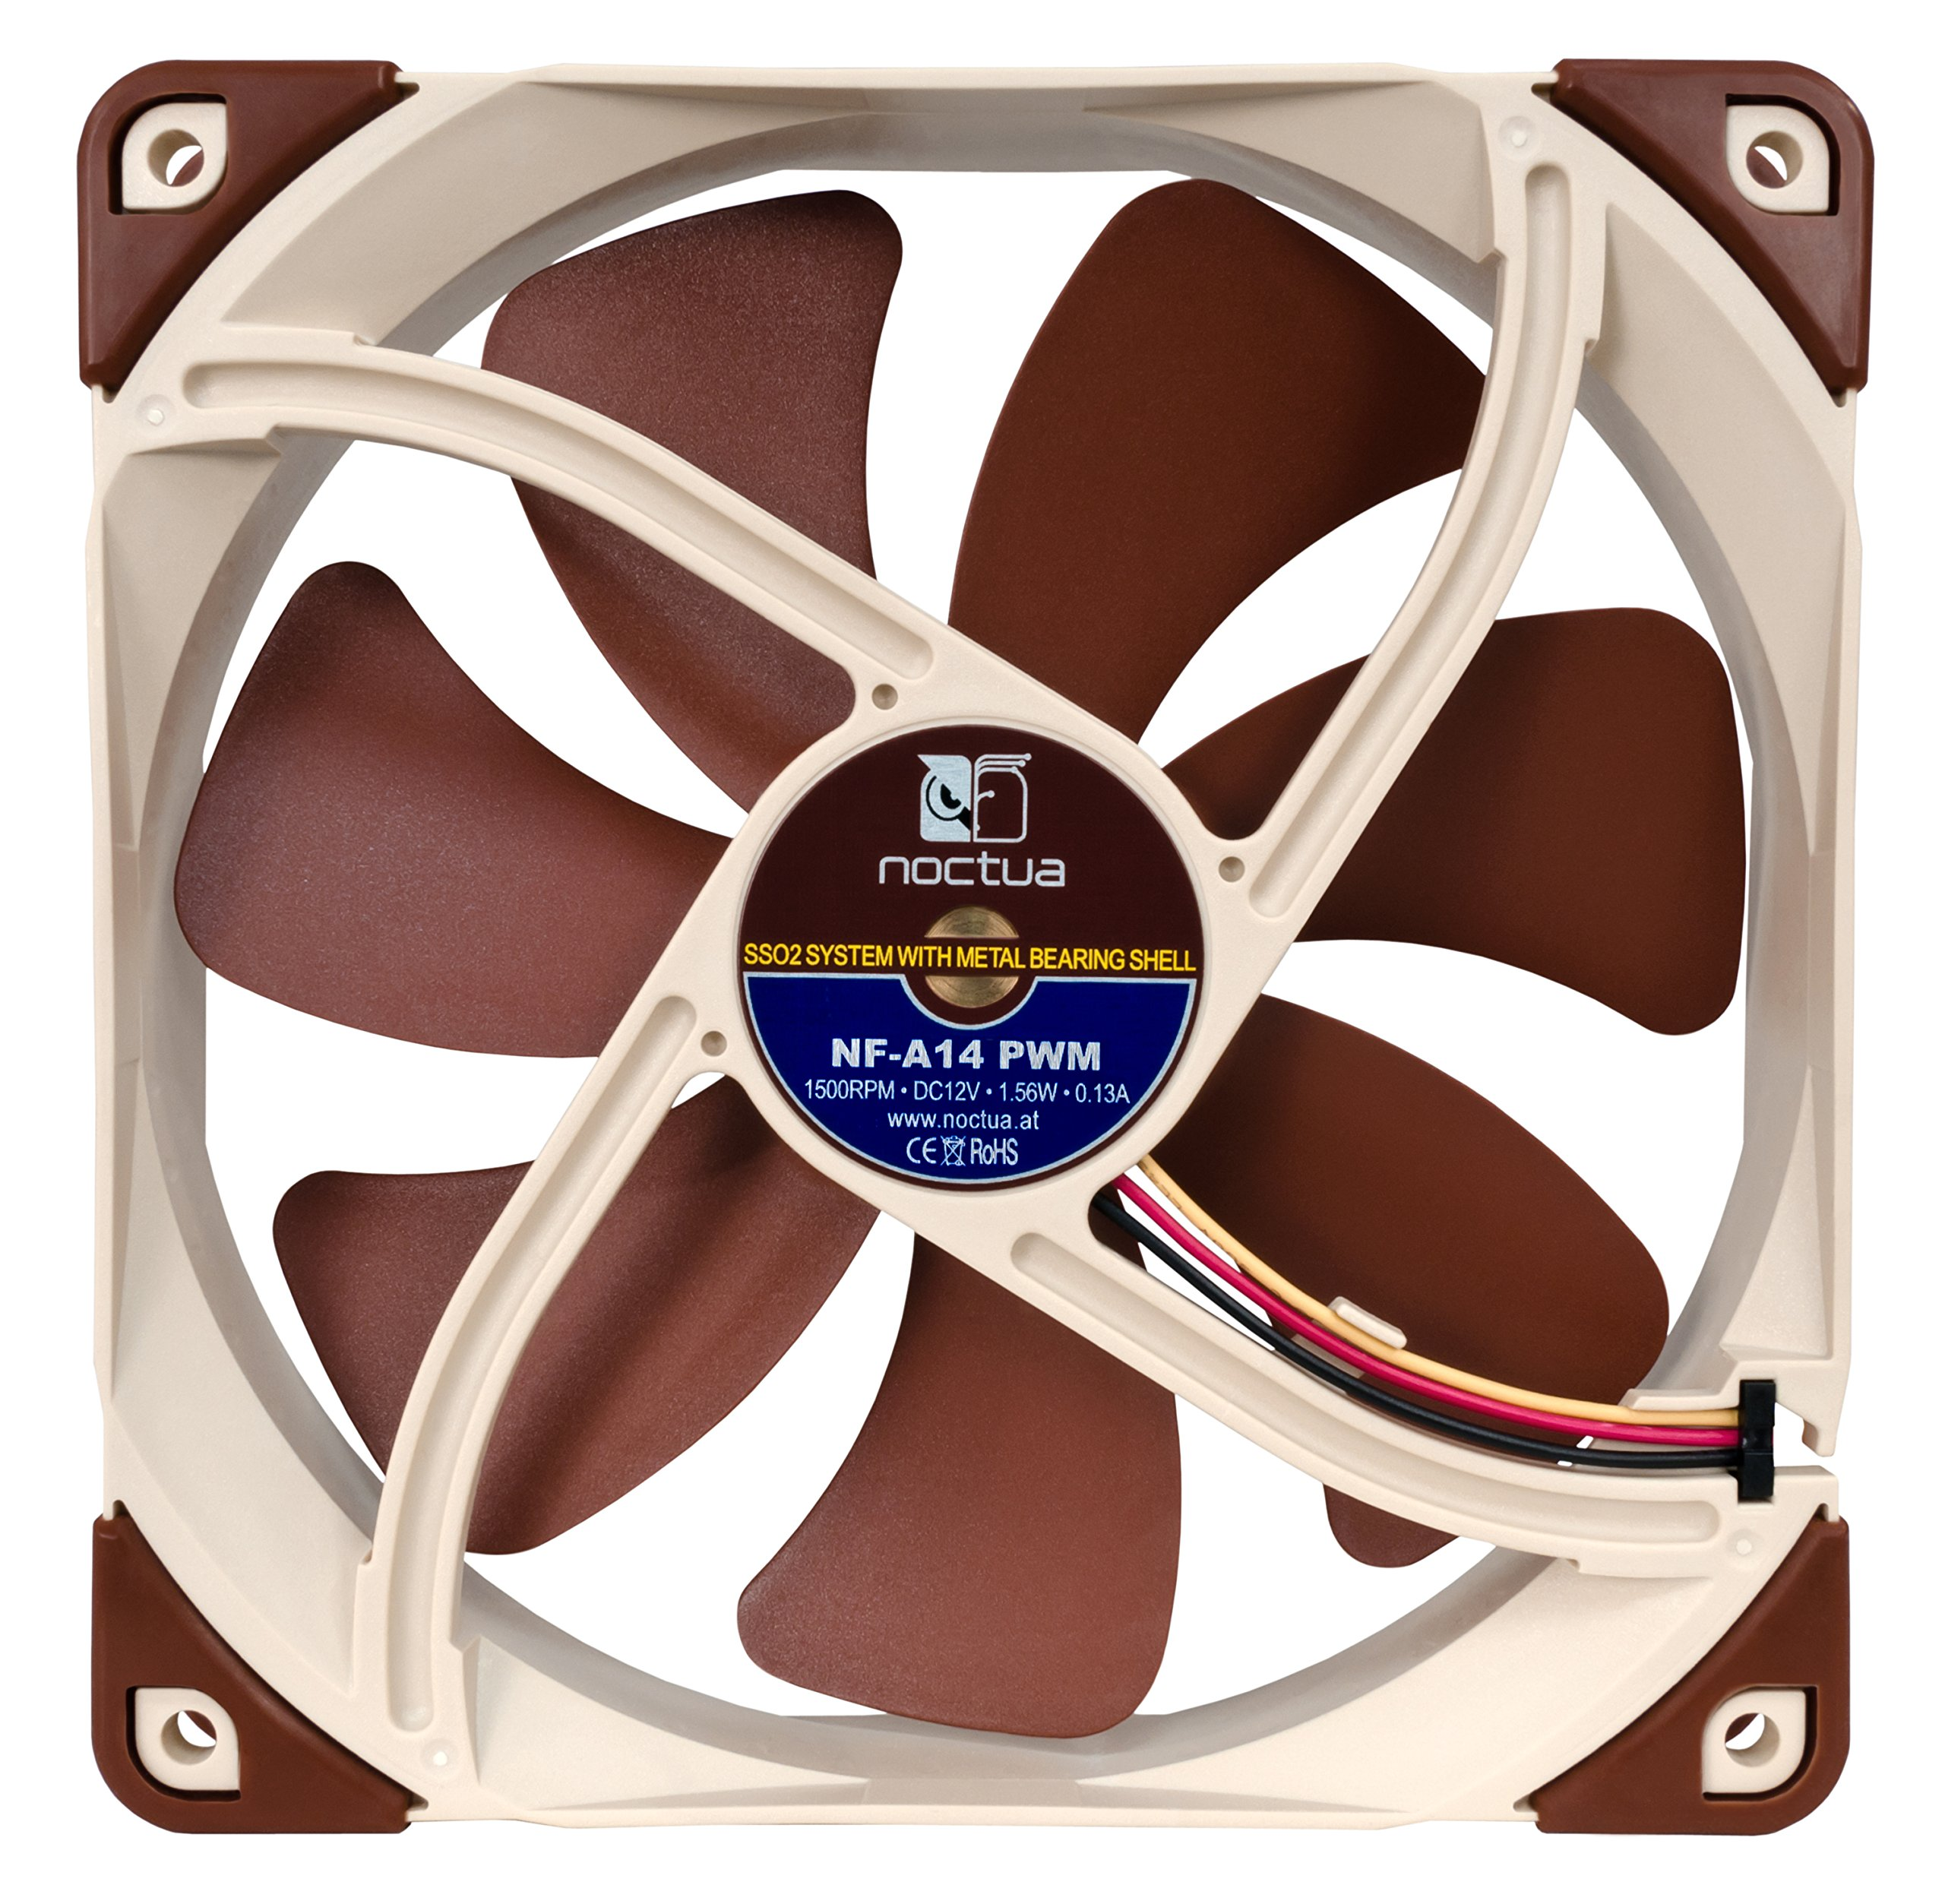 Noctua 140mm Premium Quiet Quality Fan with AAO Frame Technology (NF-A14 PWM) by noctua (Image #1)